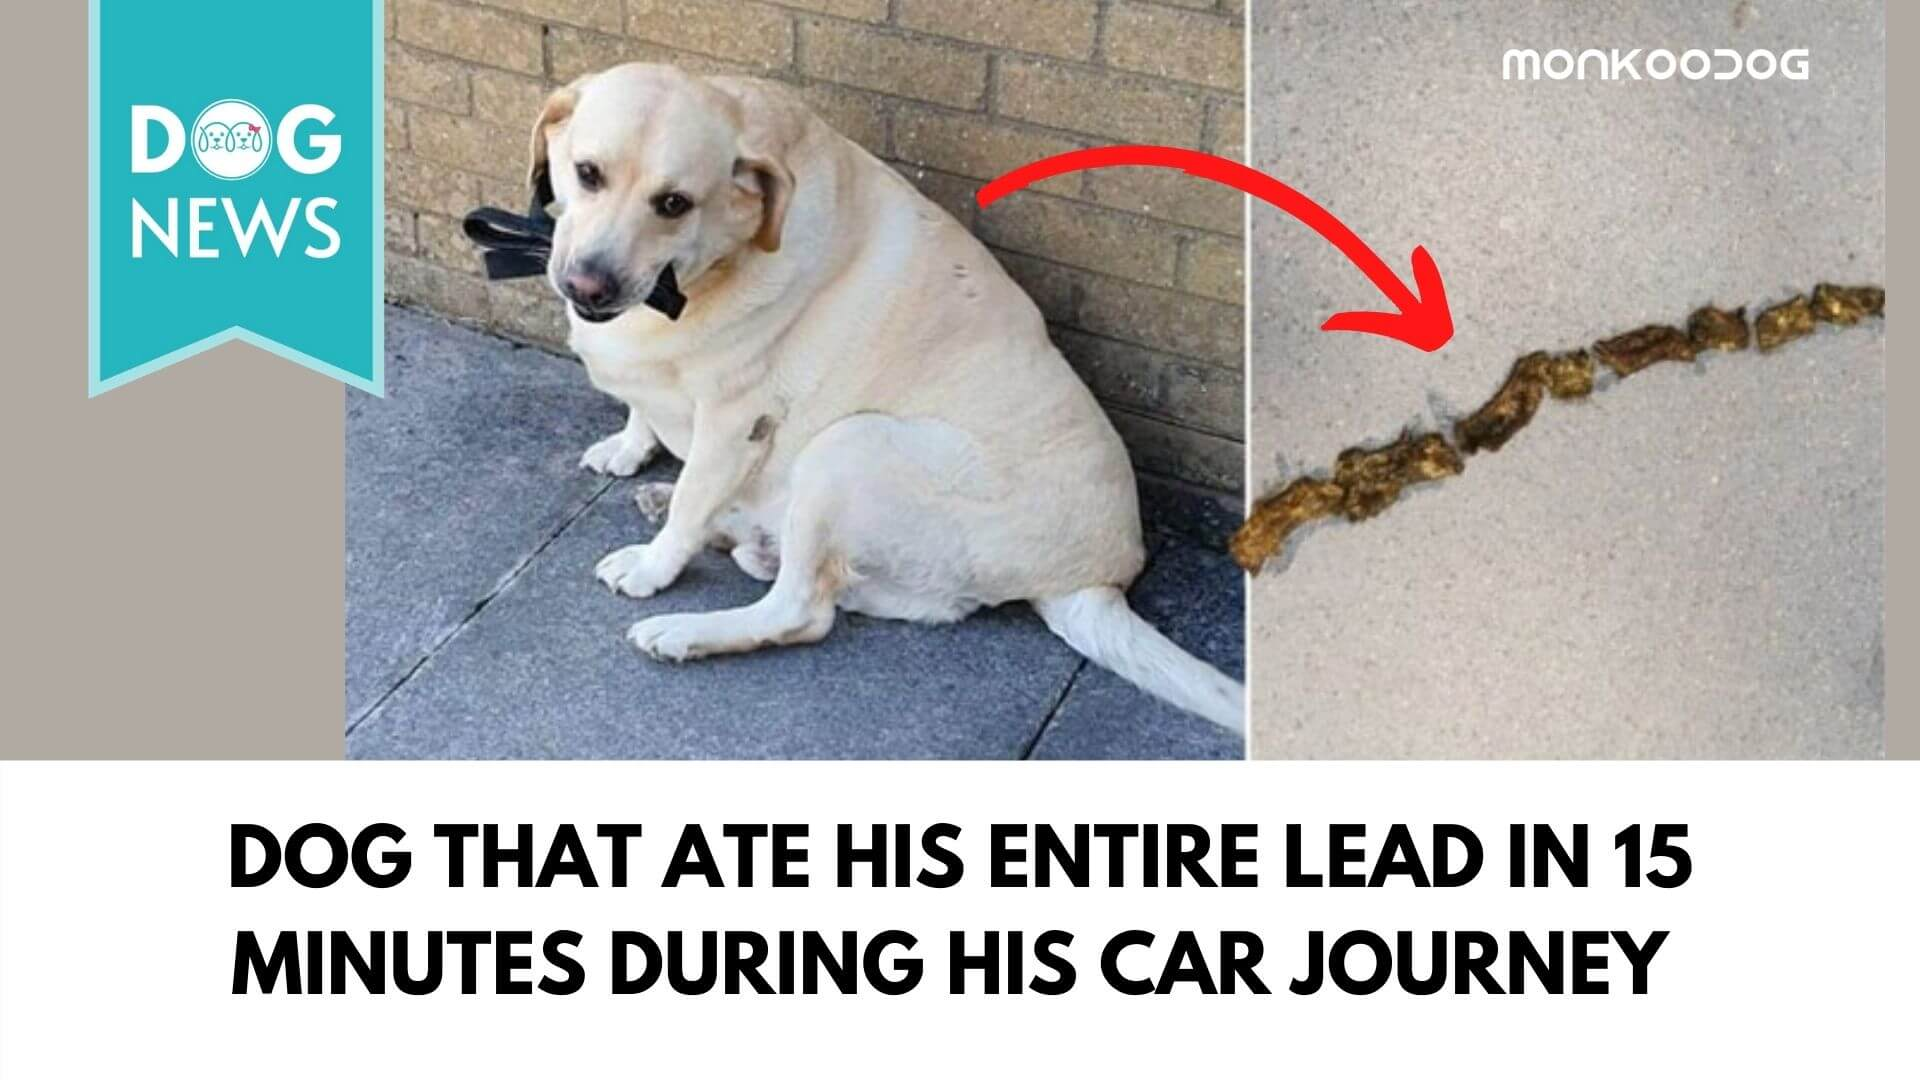 dog that ate his entire lead in 15 minutes during his car journey